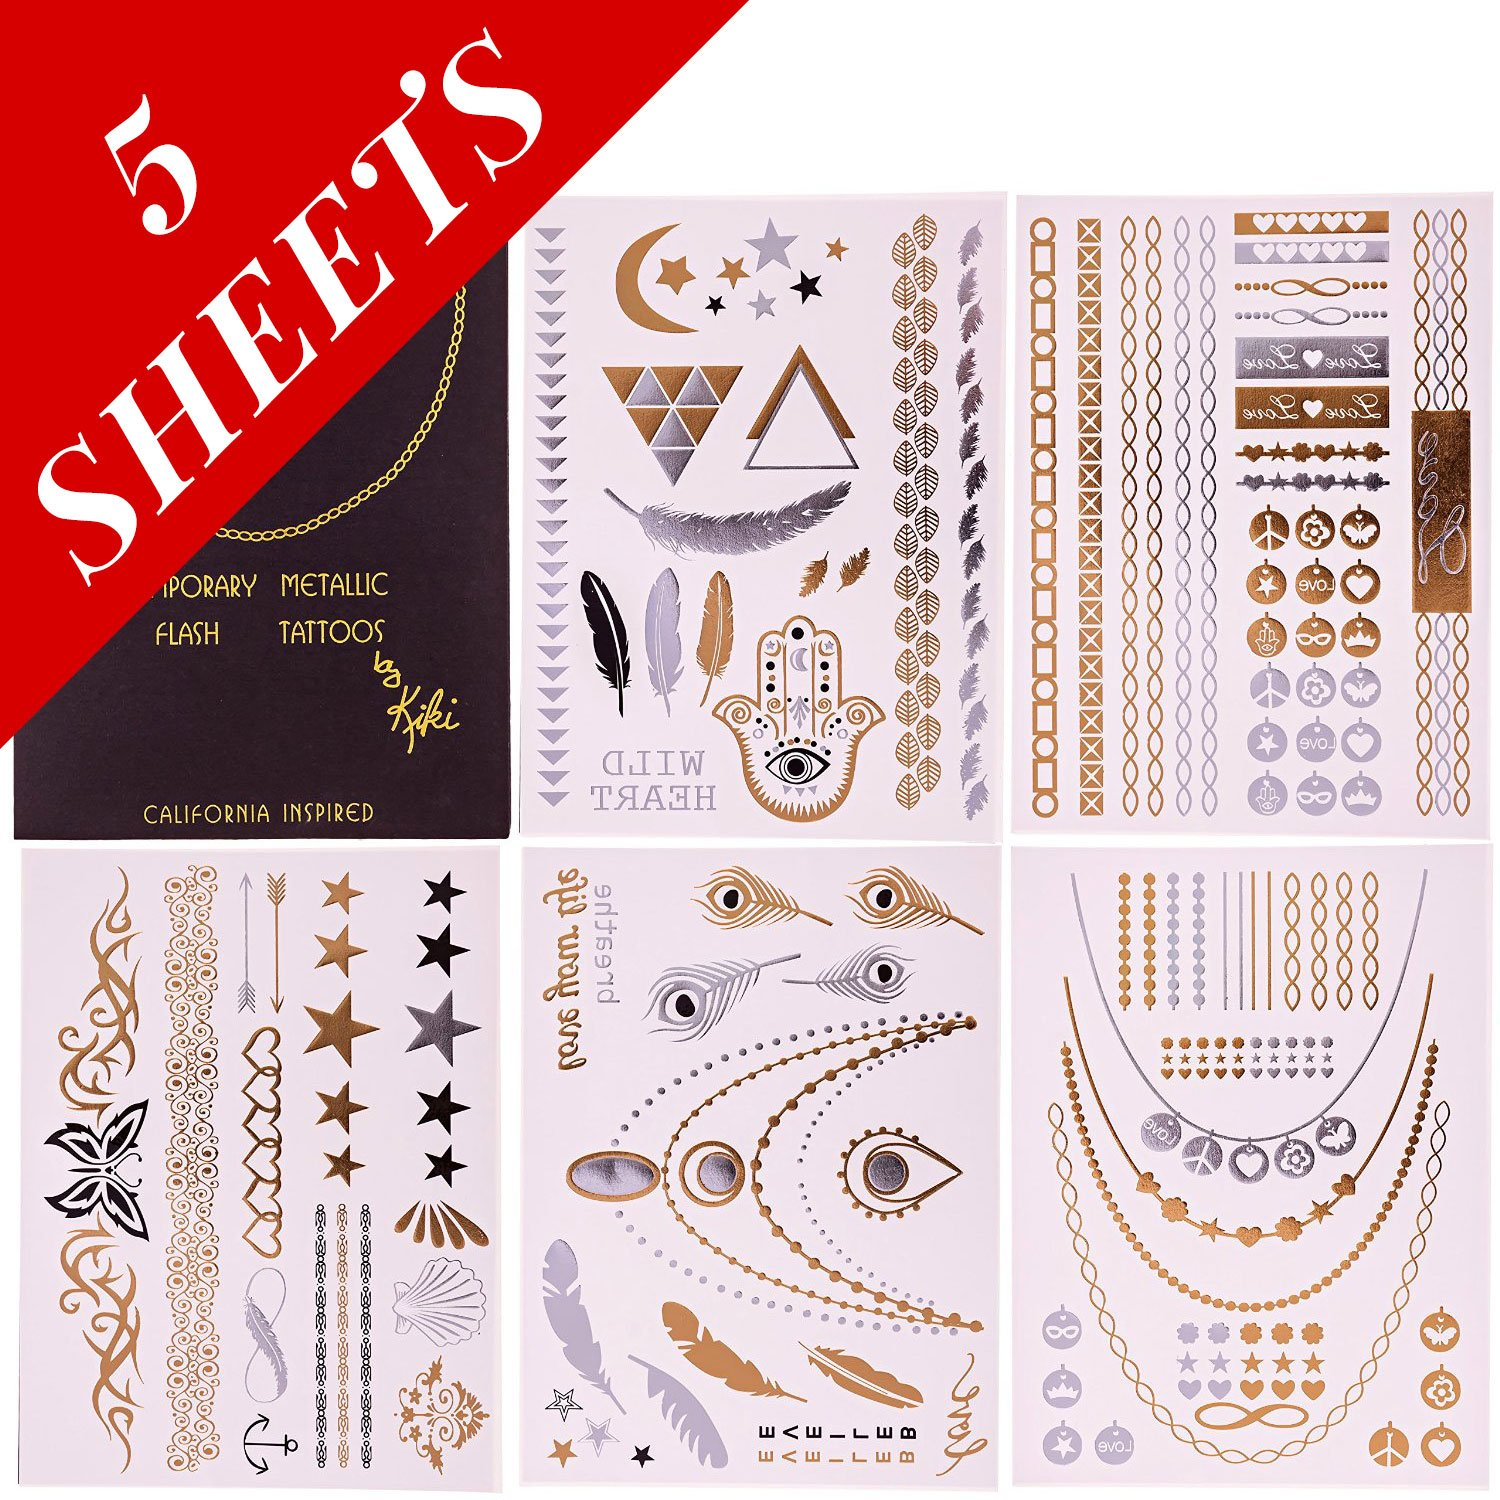 Flash Temporary Tattoos by Kiki - Best Premium Metallic Jewelry Tattoos Armbands, Bracelets and Cool Designs - Awsesome 5 pack!